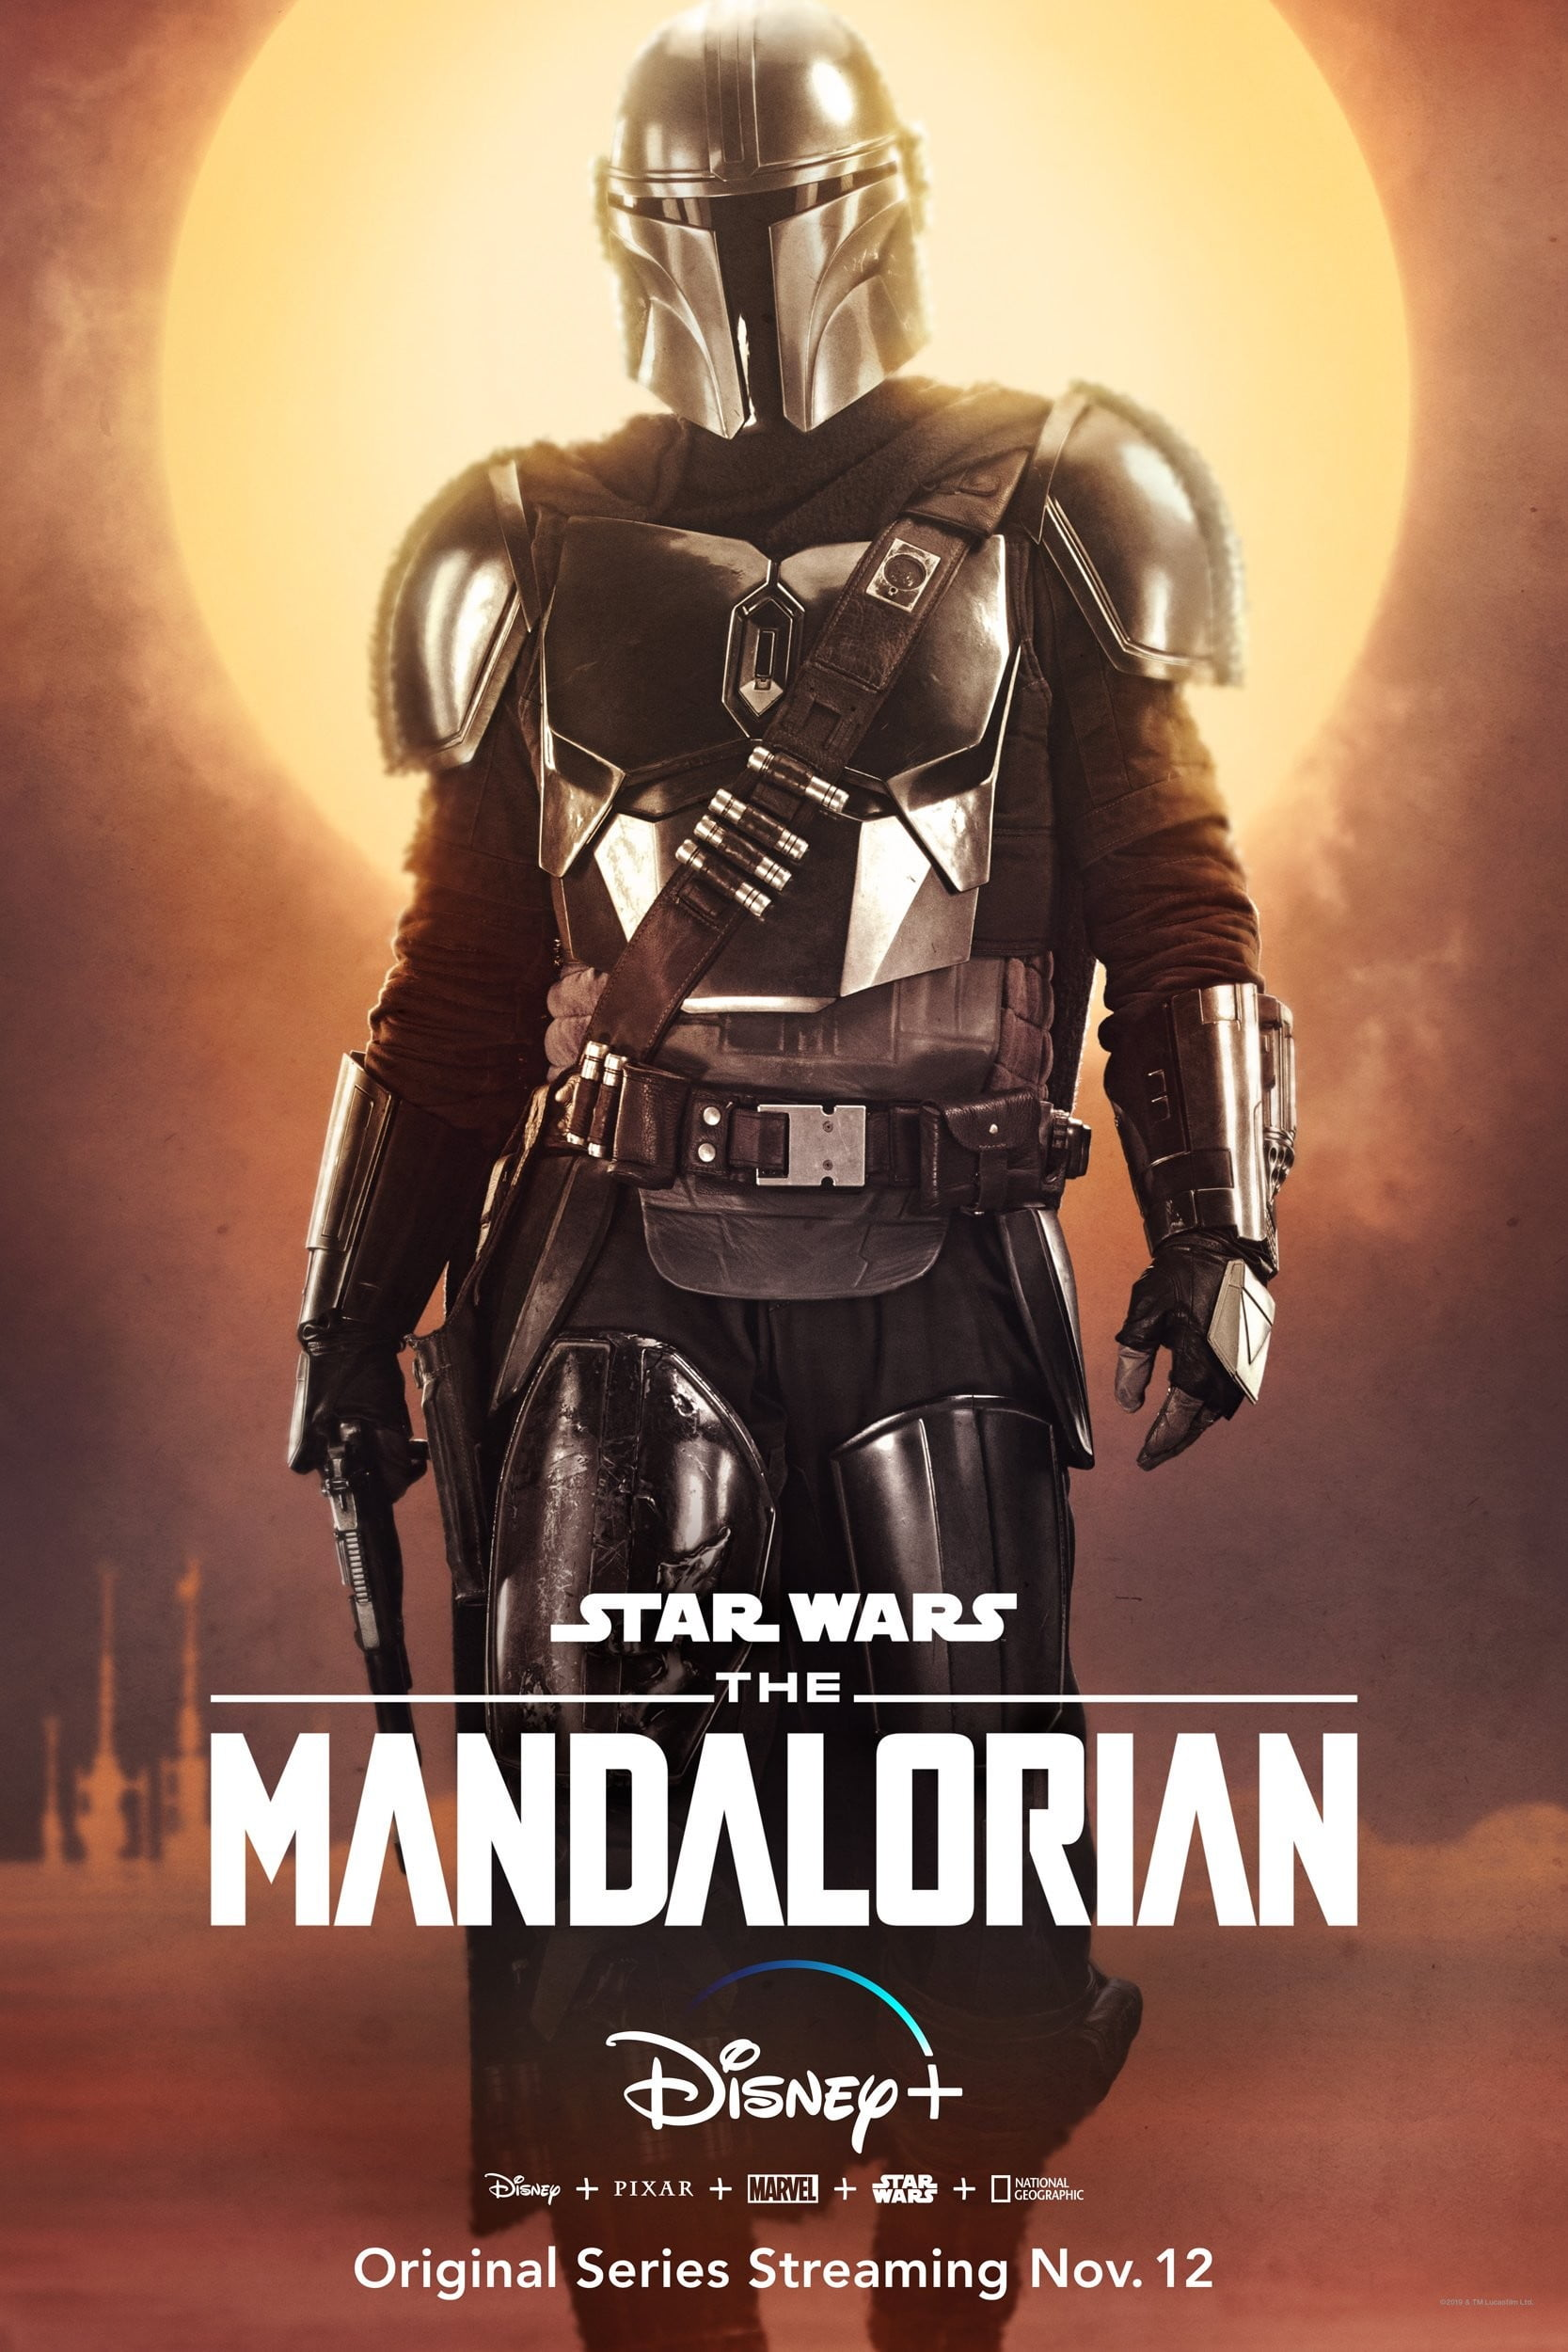 https://icdn2.digitaltrends.com/image/digitaltrends/mandalorian-promo-poster-pablo-pascal-full-armor-1667x2500.jpg